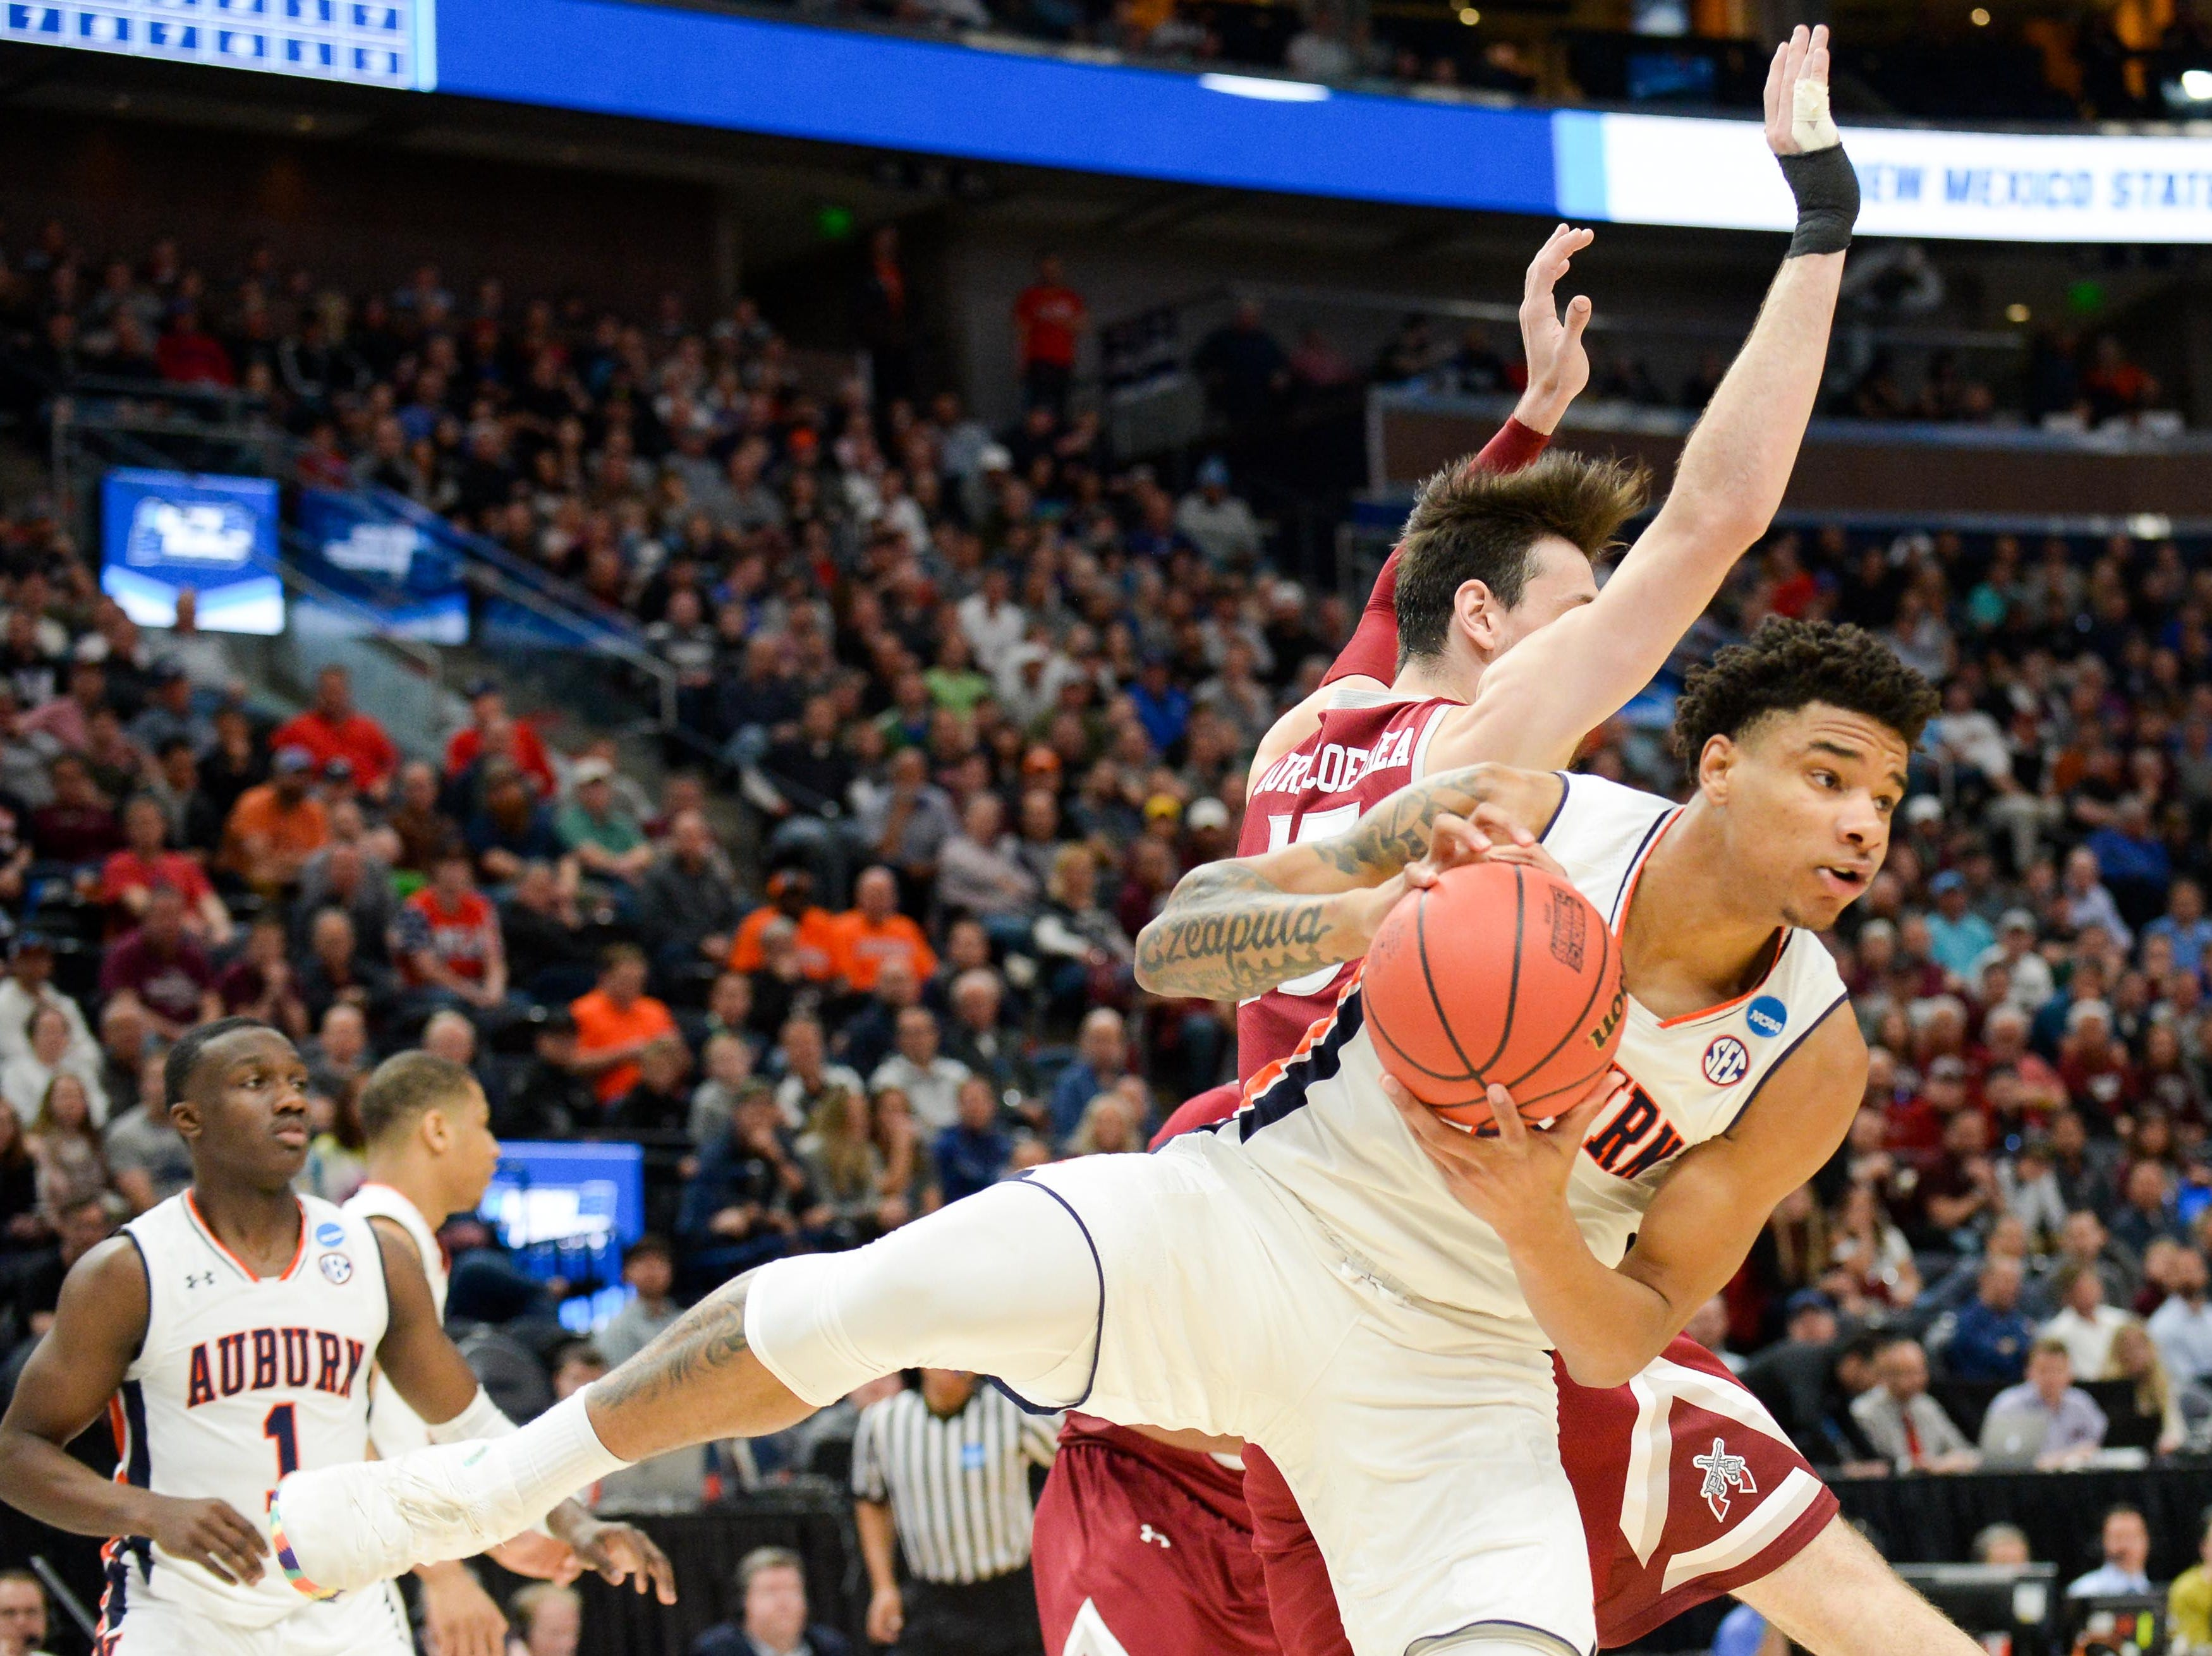 Mar 21, 2019; Salt Lake City, UT, USA; Auburn Tigers forward Chuma Okeke (5) brings down a rebound as New Mexico State Aggies forward Ivan Aurrecoechea (15) defends during the first half in the first round of the 2019 NCAA Tournament at Vivint Smart Home Arena. Mandatory Credit: Gary A. Vasquez-USA TODAY Sports